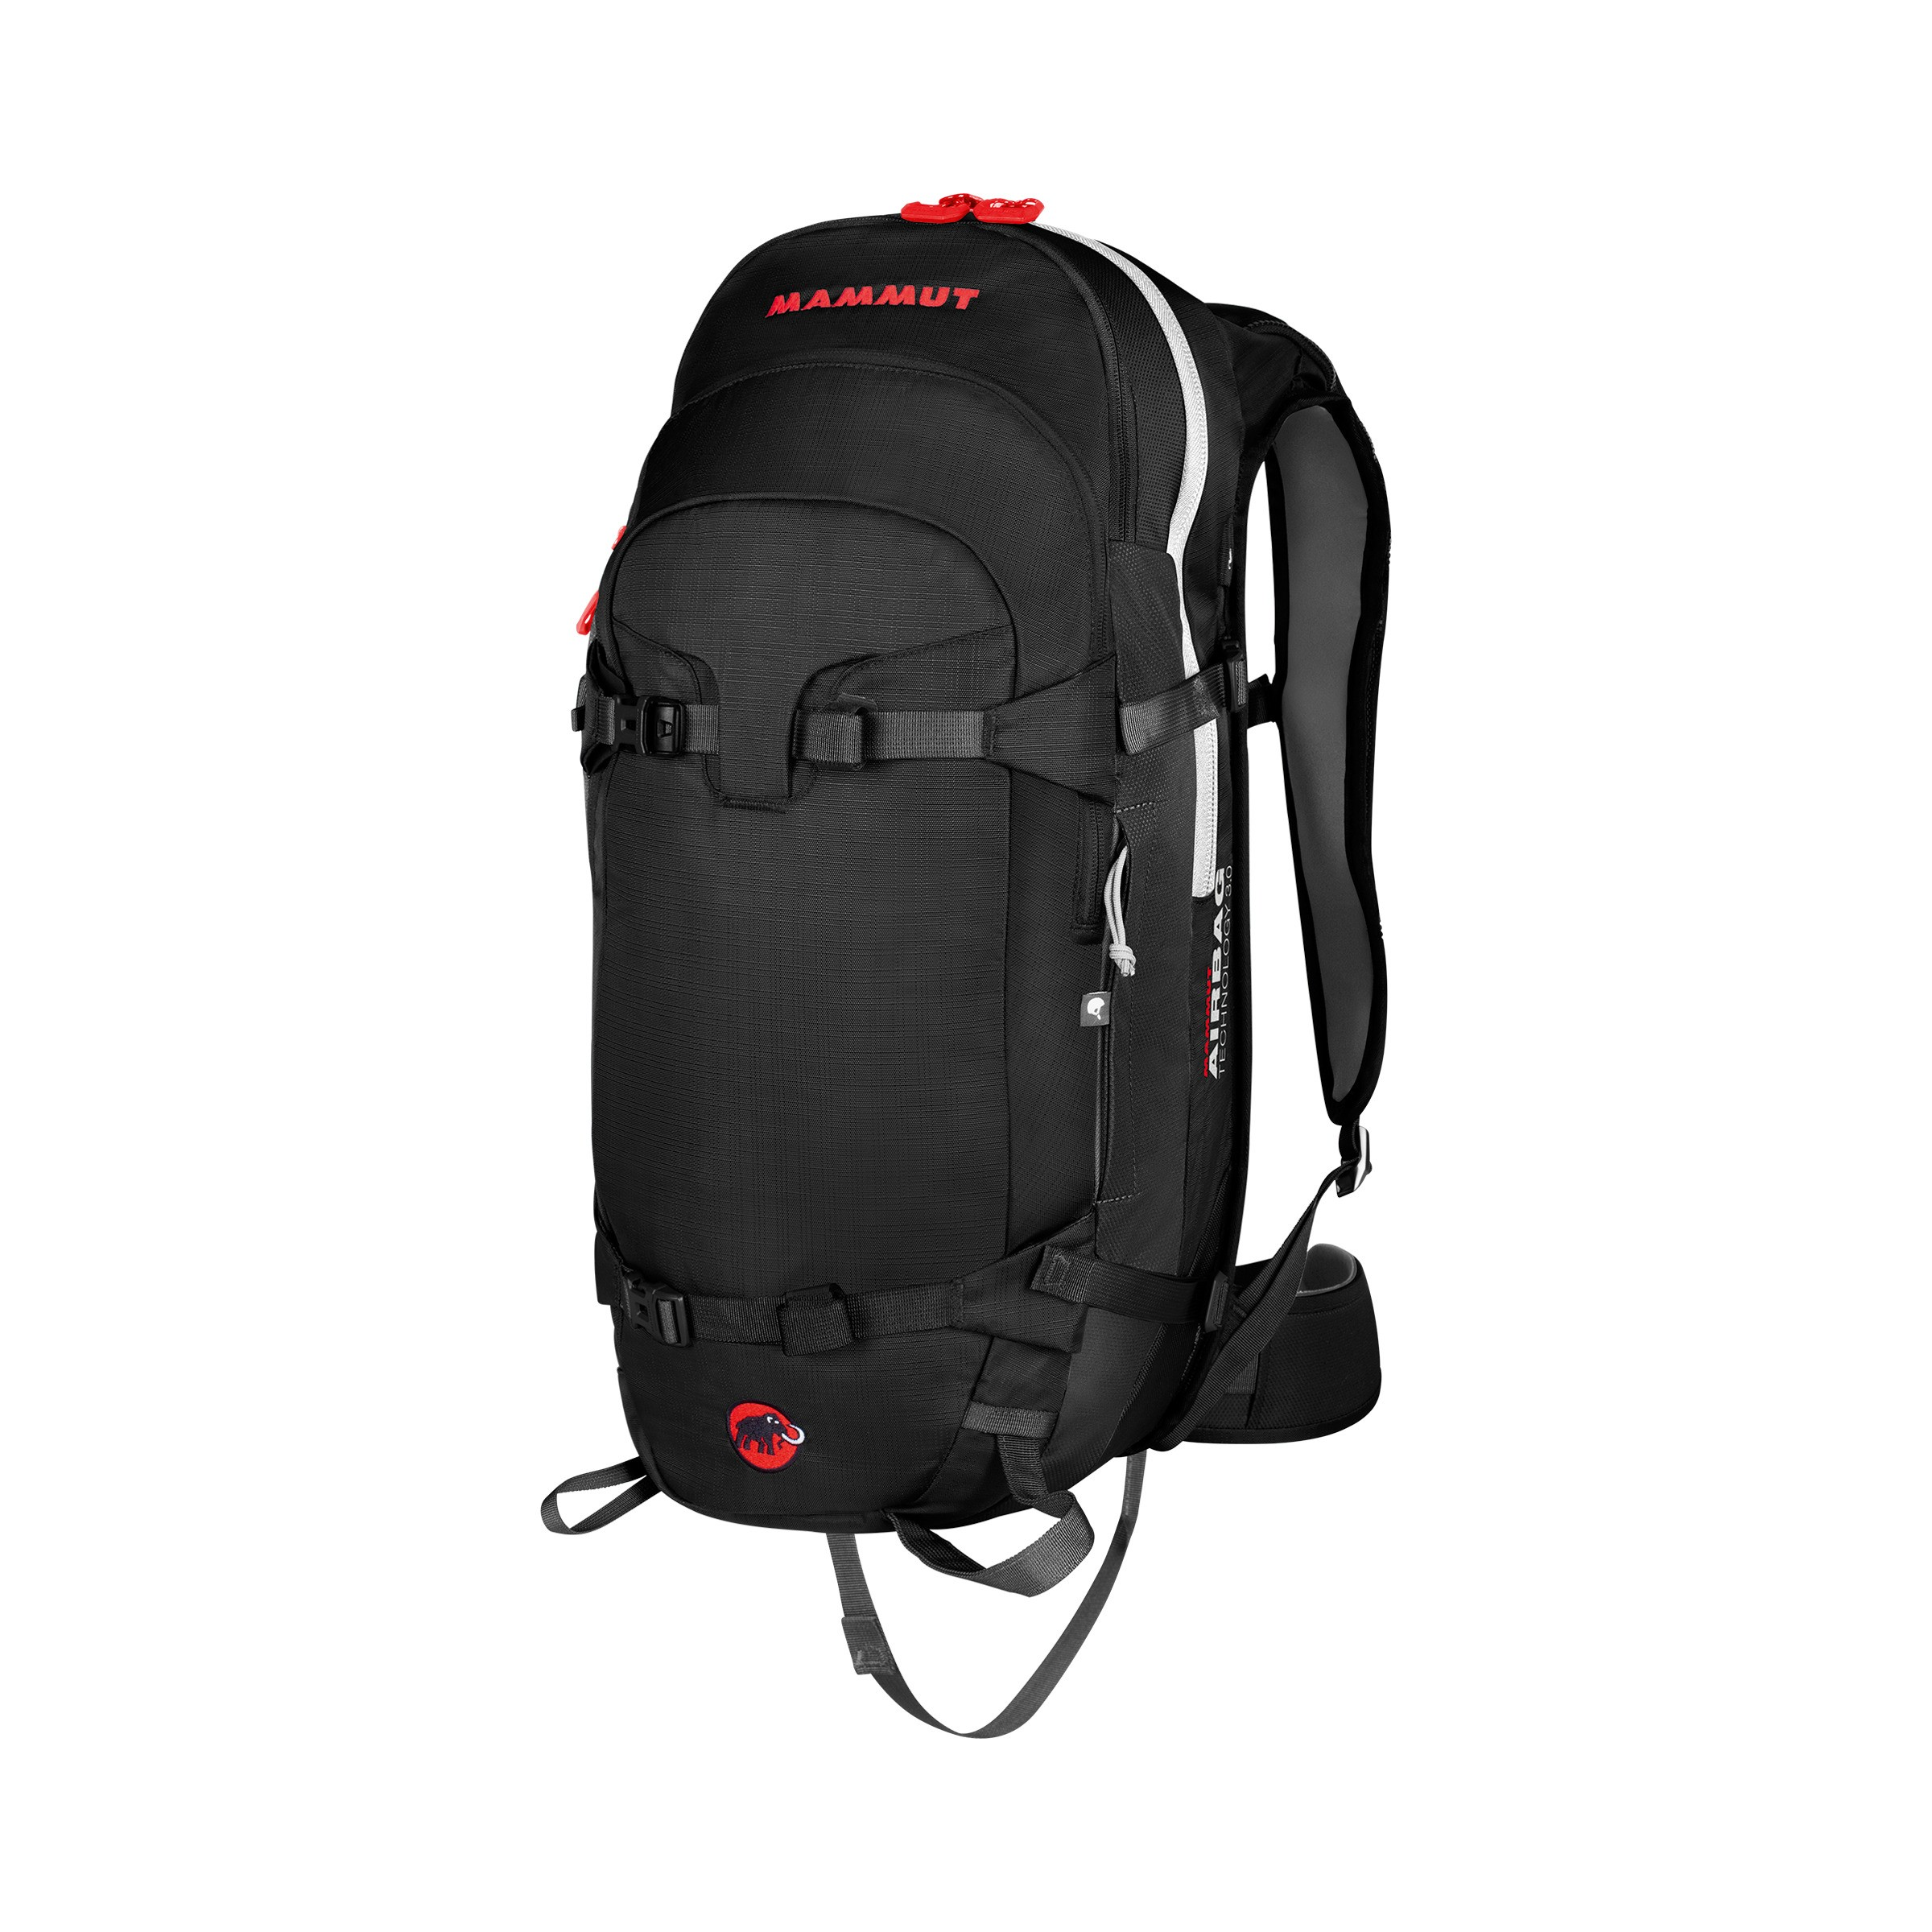 Лавинна раница Mammut Pro Protection Airbag 3.0